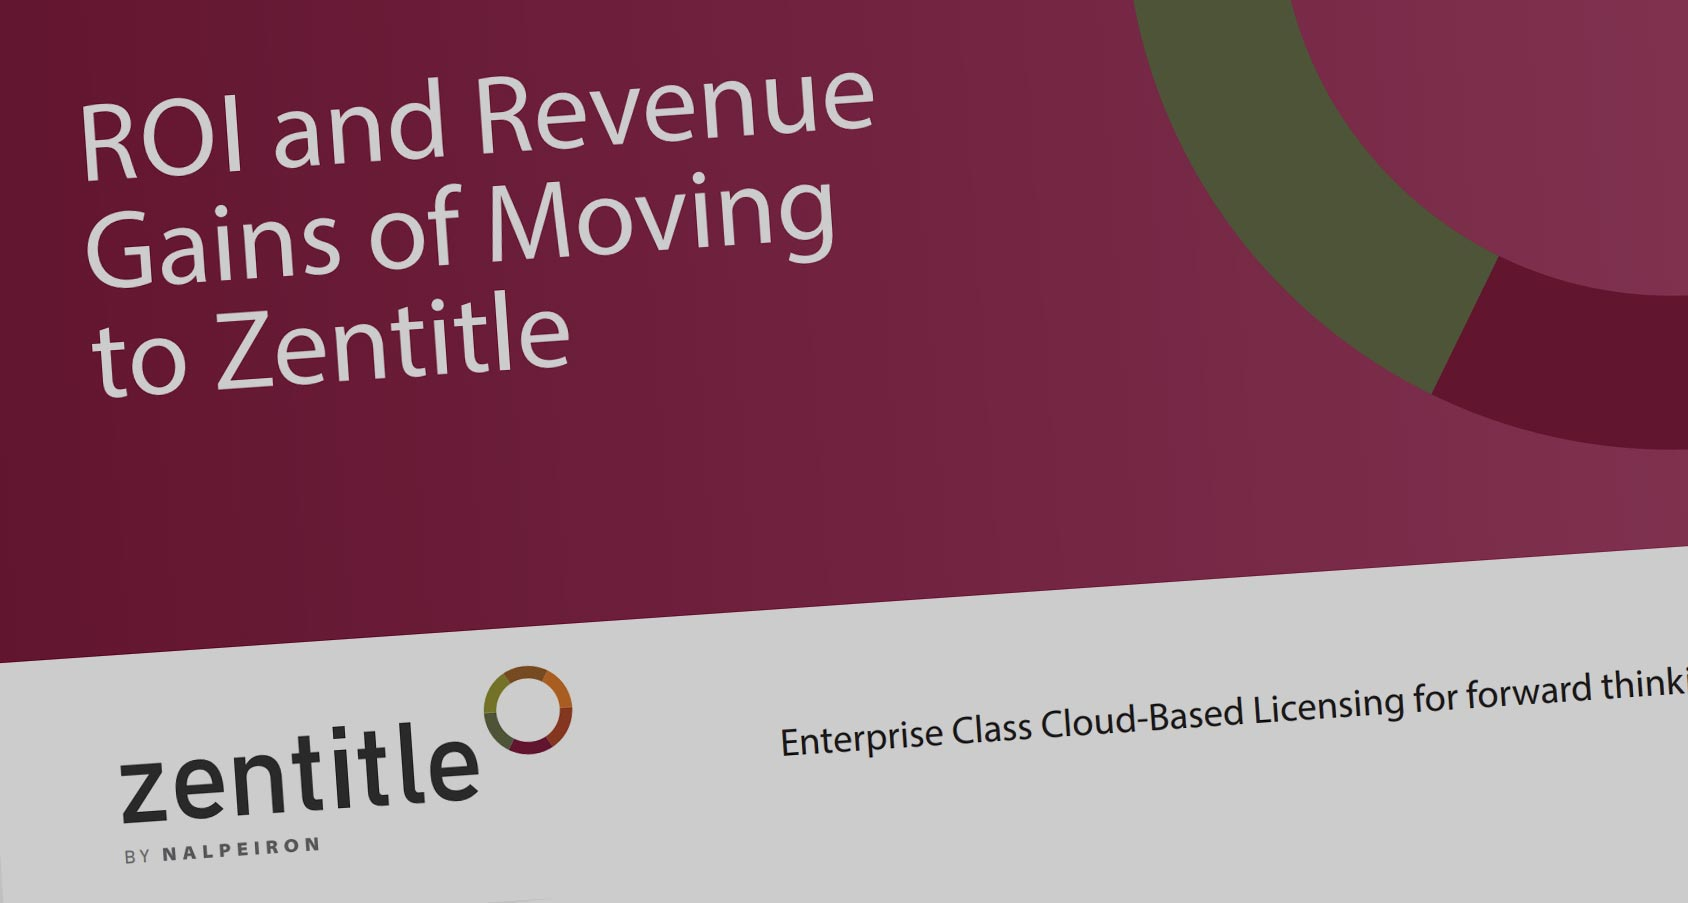 New Guide to ROI and Revenue Gains of Moving to Zentitle - Available Now